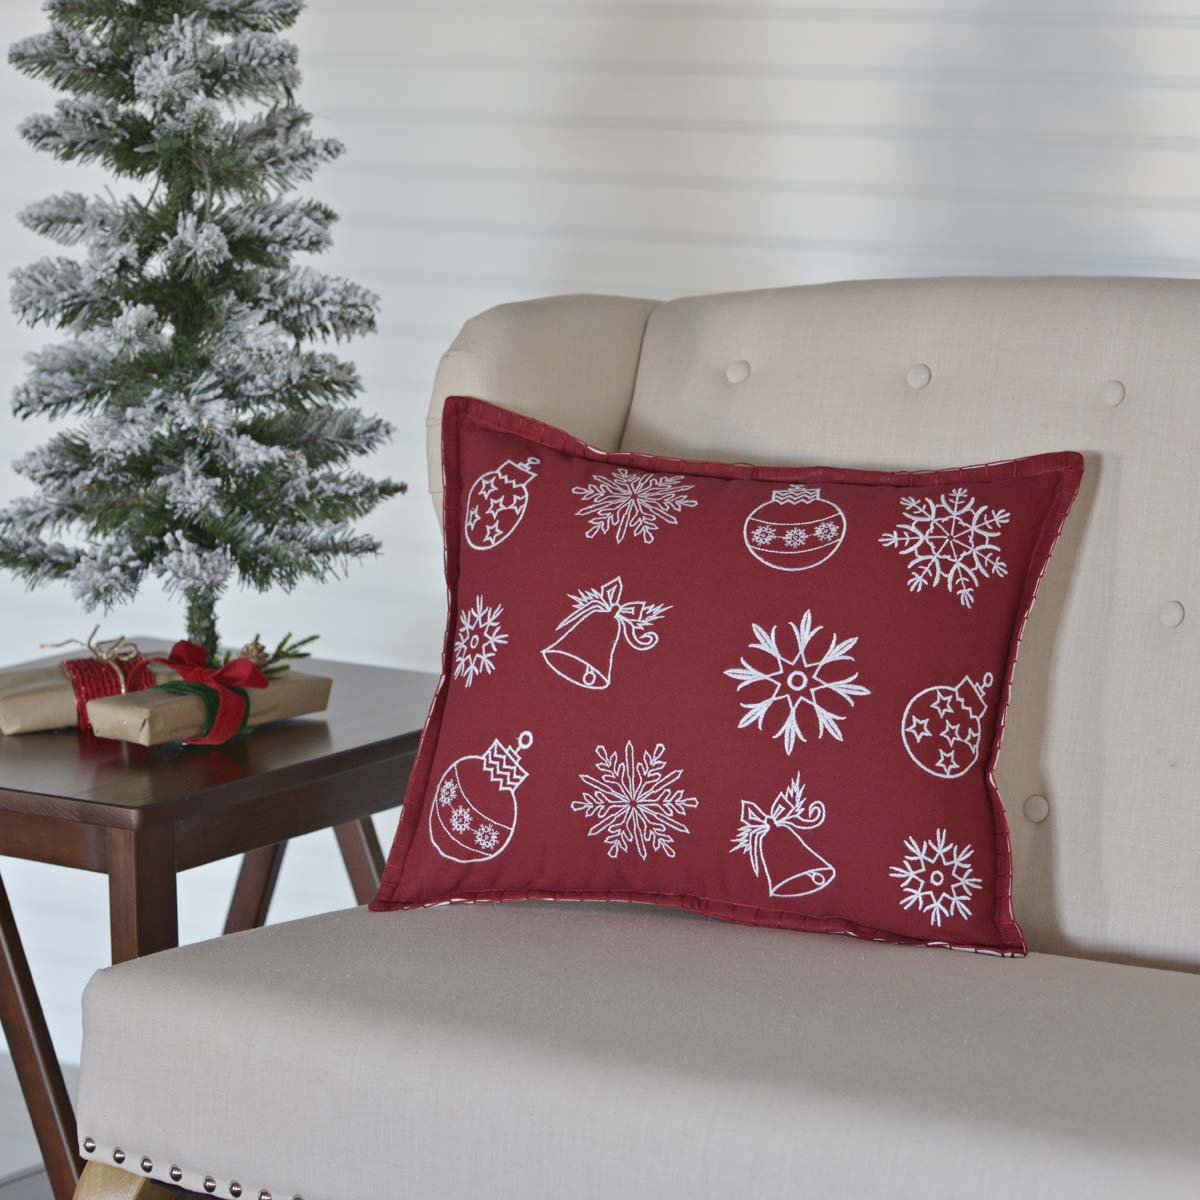 Snow-Ornaments-Pillow-14x18-image-1